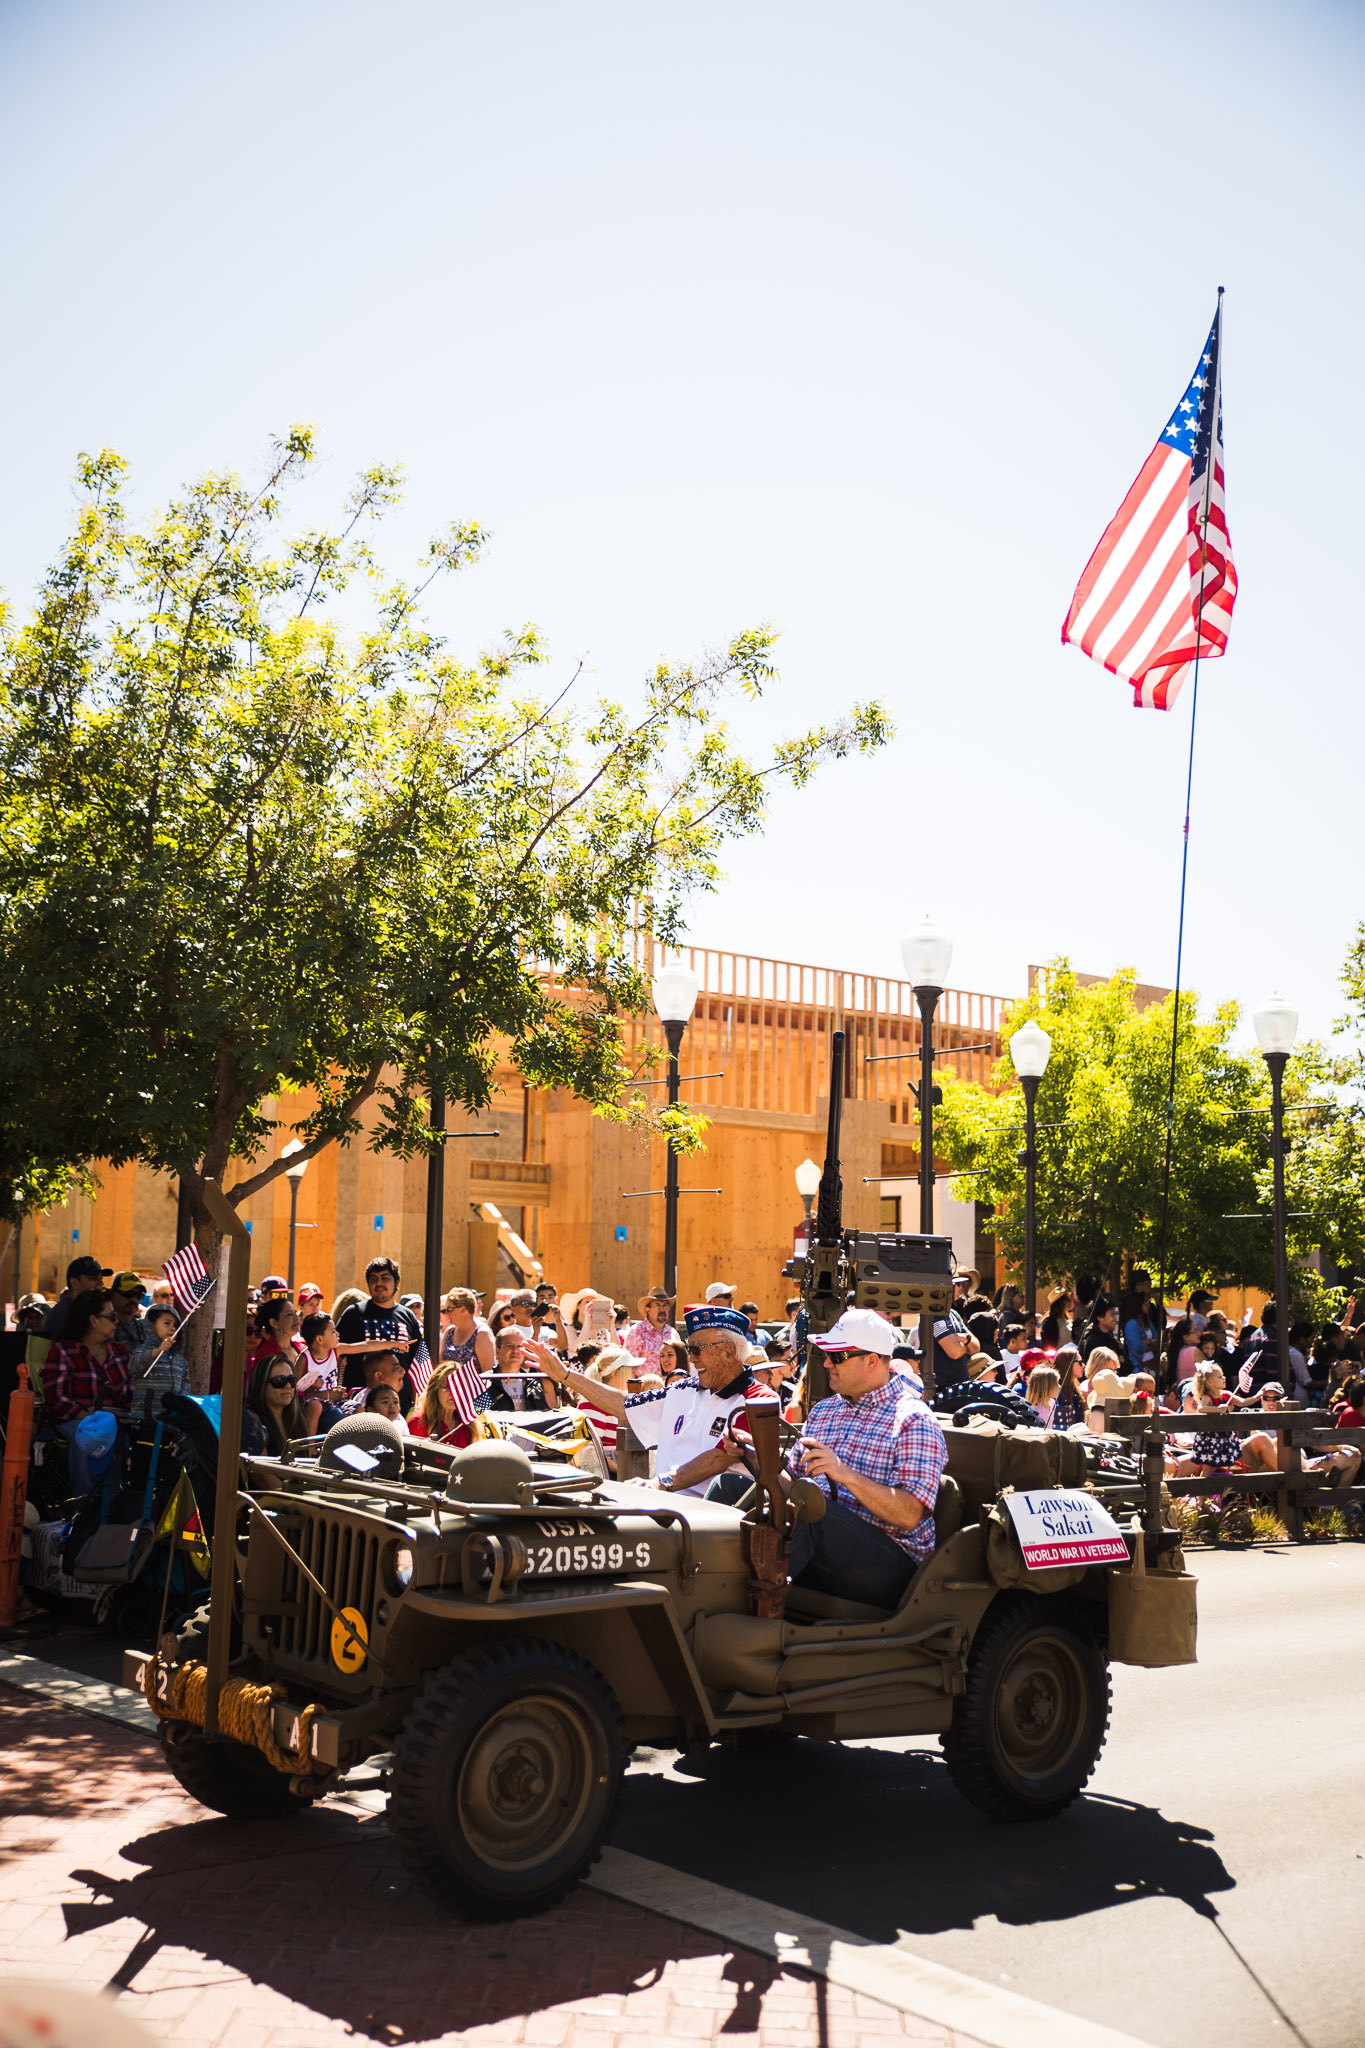 Archer_Inspired_Photography_Morgan_Hill_California_4th_of_july_parade-96.jpg